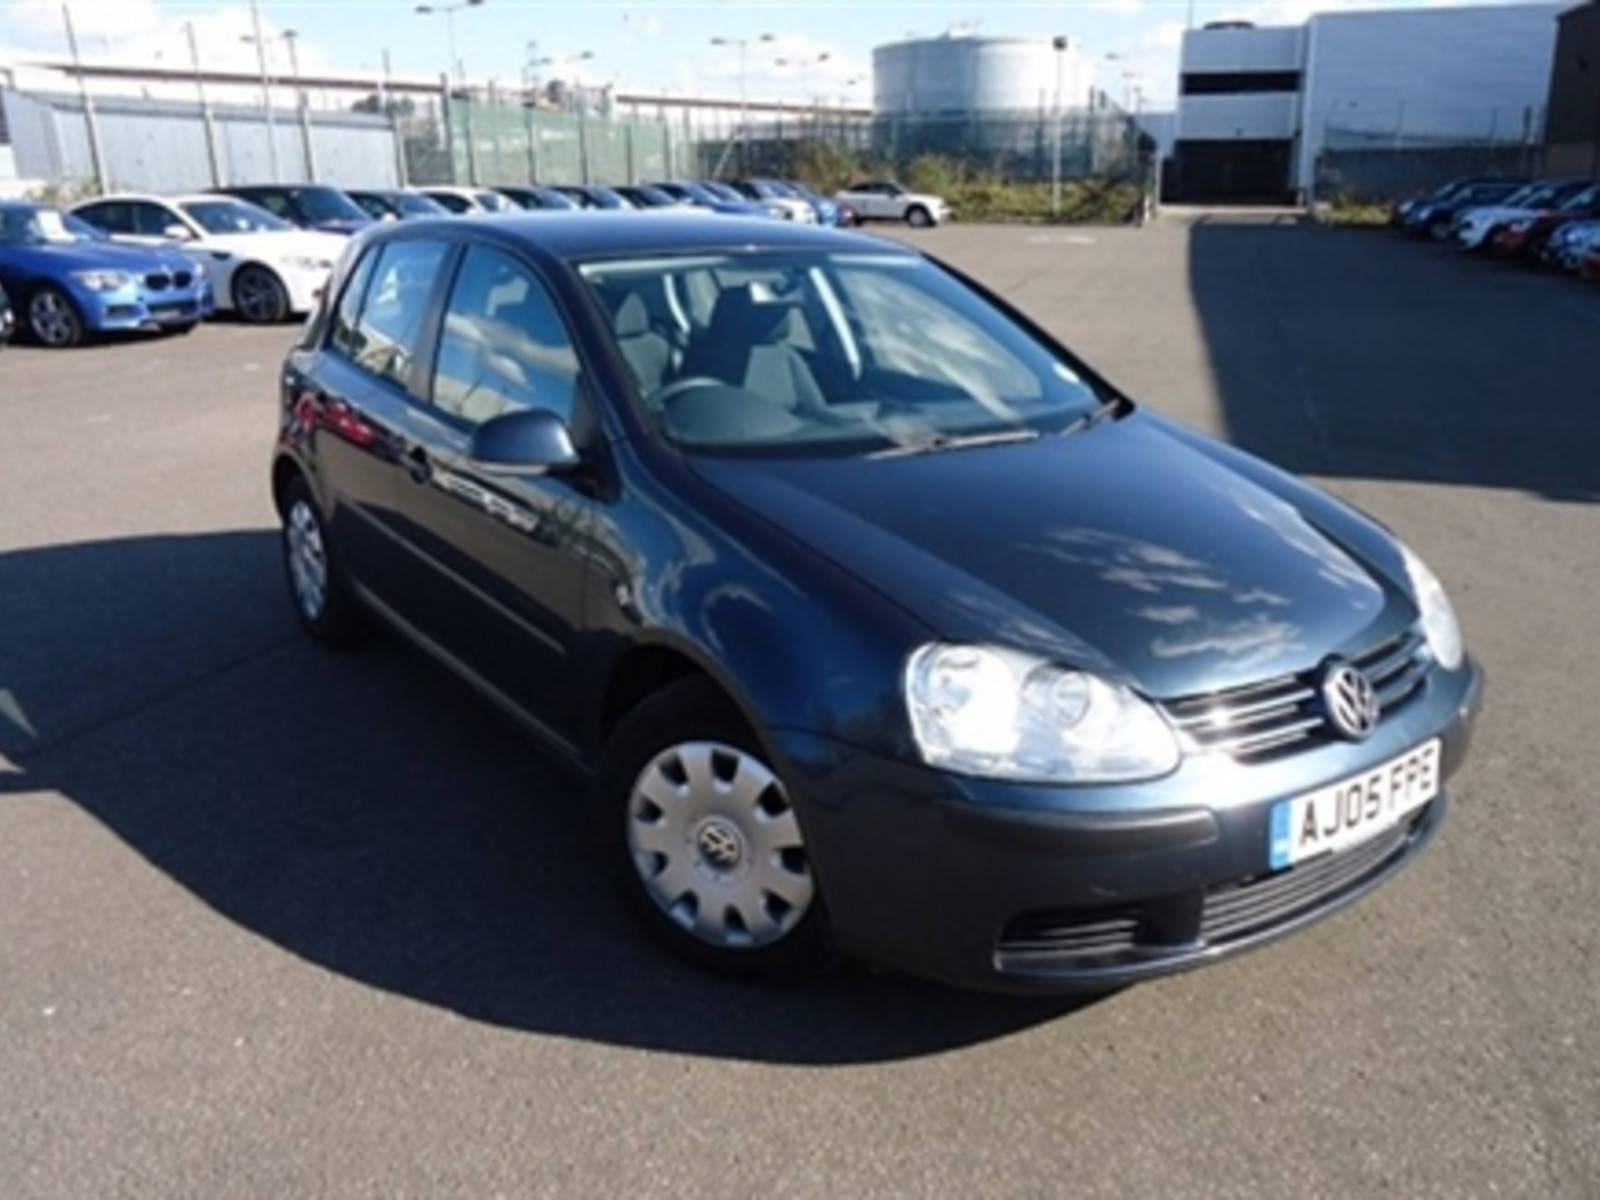 Volkswagen Golf 1.6 FSI S Hatchback Petrol Blue at H & D Motors Watford